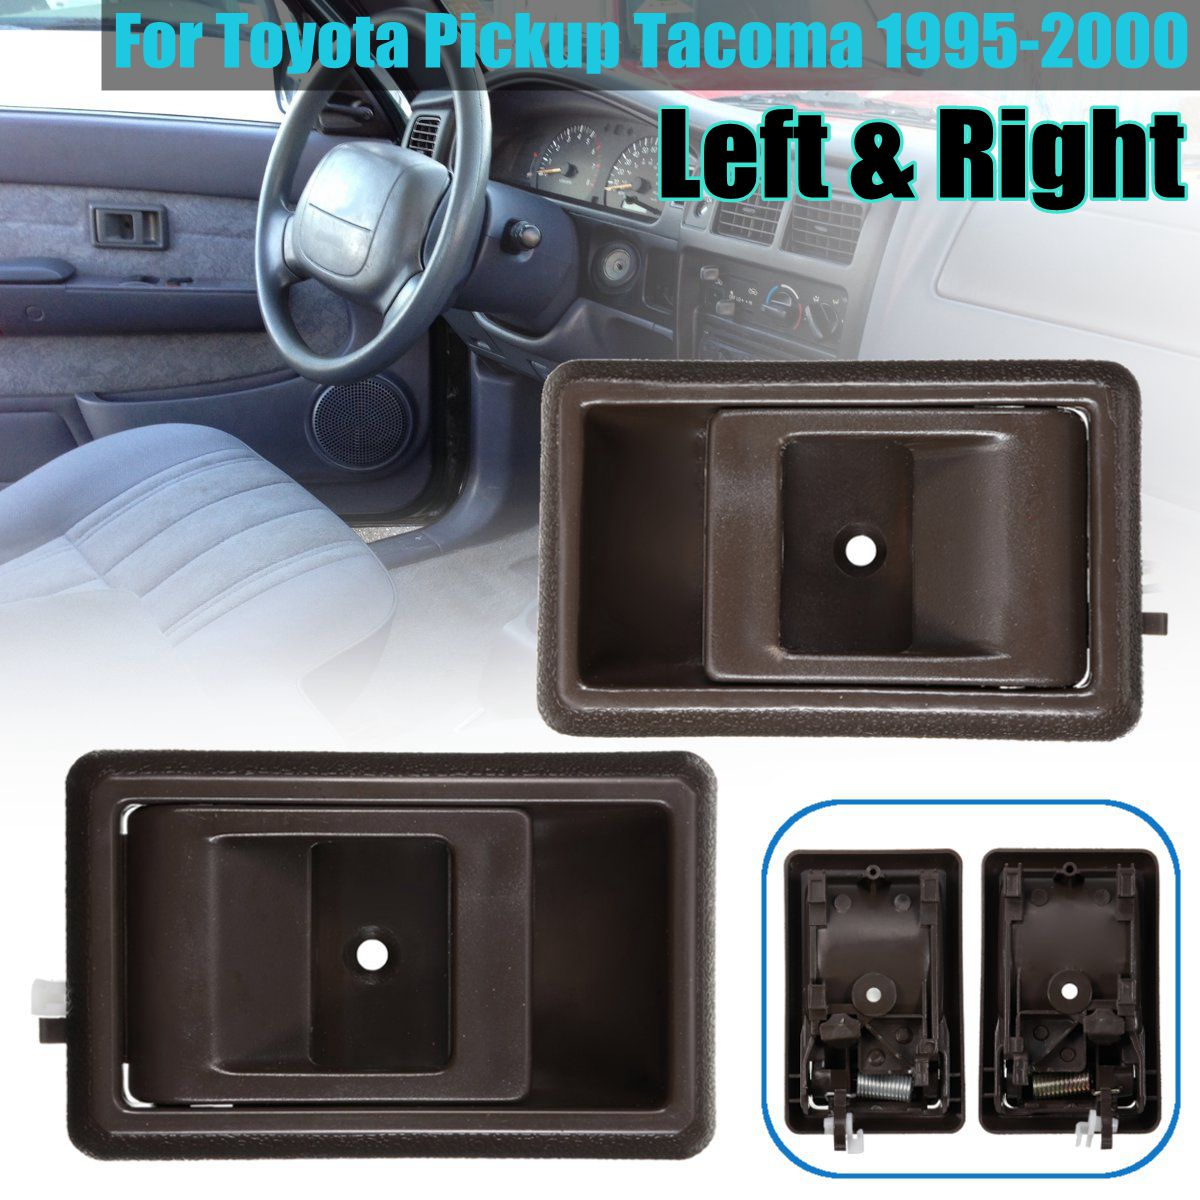 Front Rear Left Right Interior Door Handle For Toyota Pickup Tacoma 1995 1996 1997 1998 1999 2000 69205 04010 Buy At The Price Of 3 20 In Aliexpress Com Imall Com